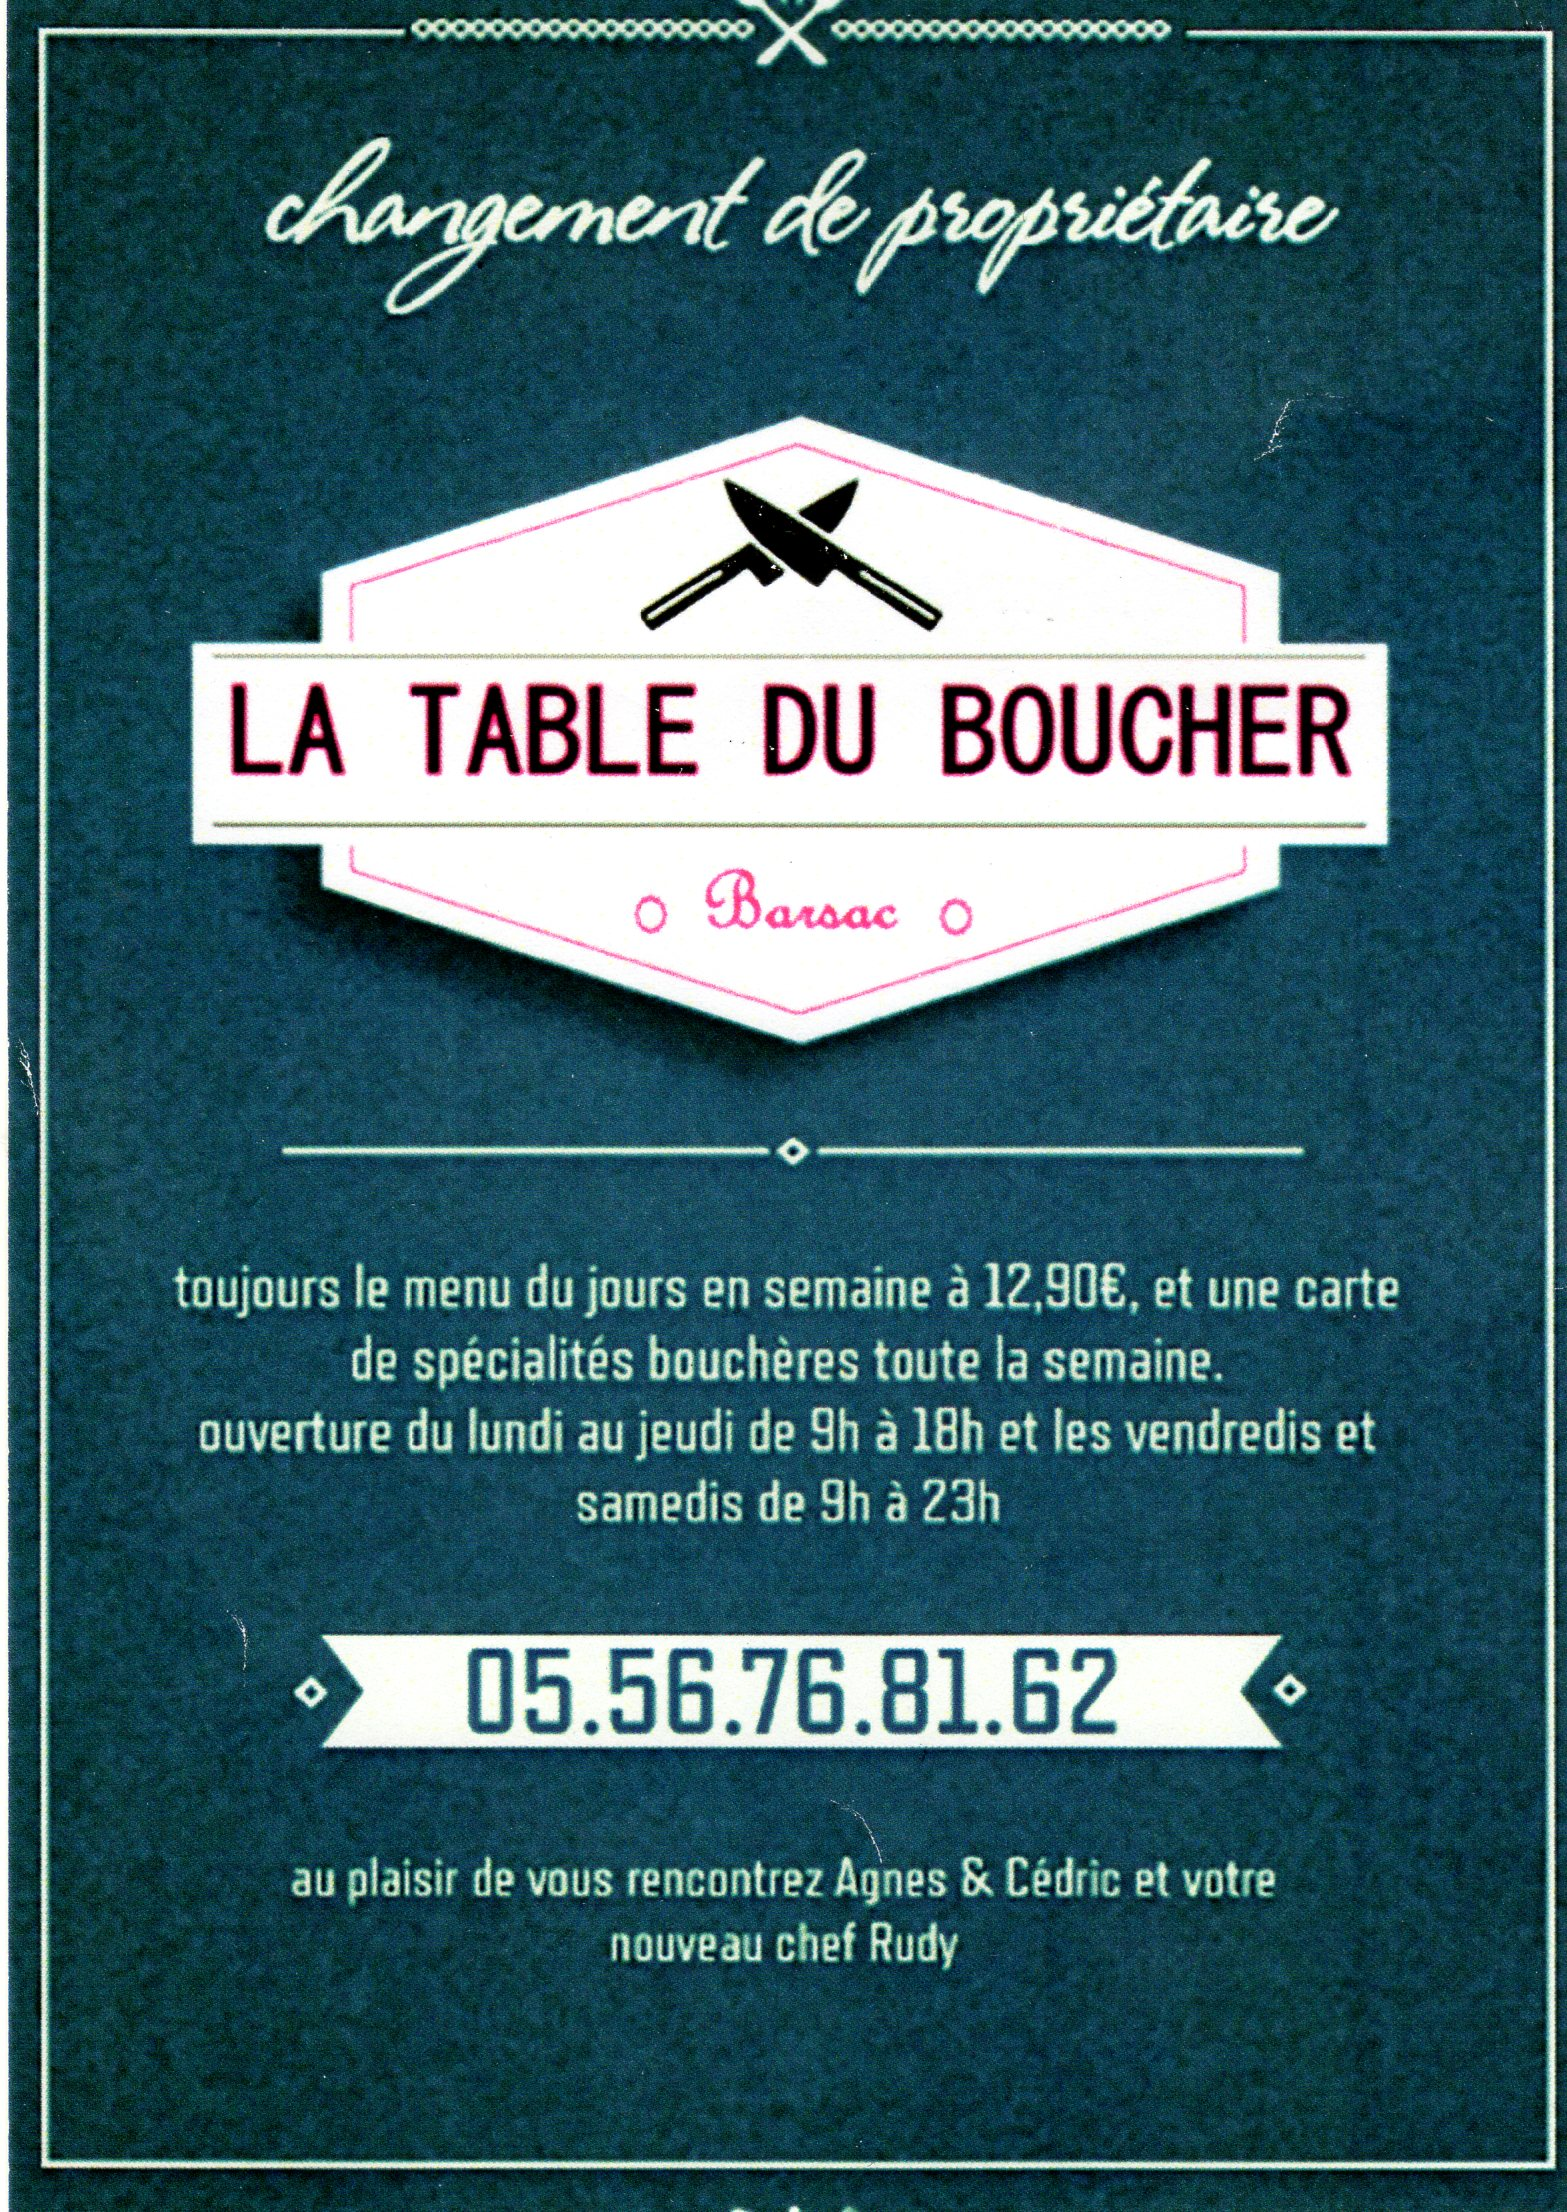 Restaurant mairie de barsac - Restaurant la table du boucher arcachon ...